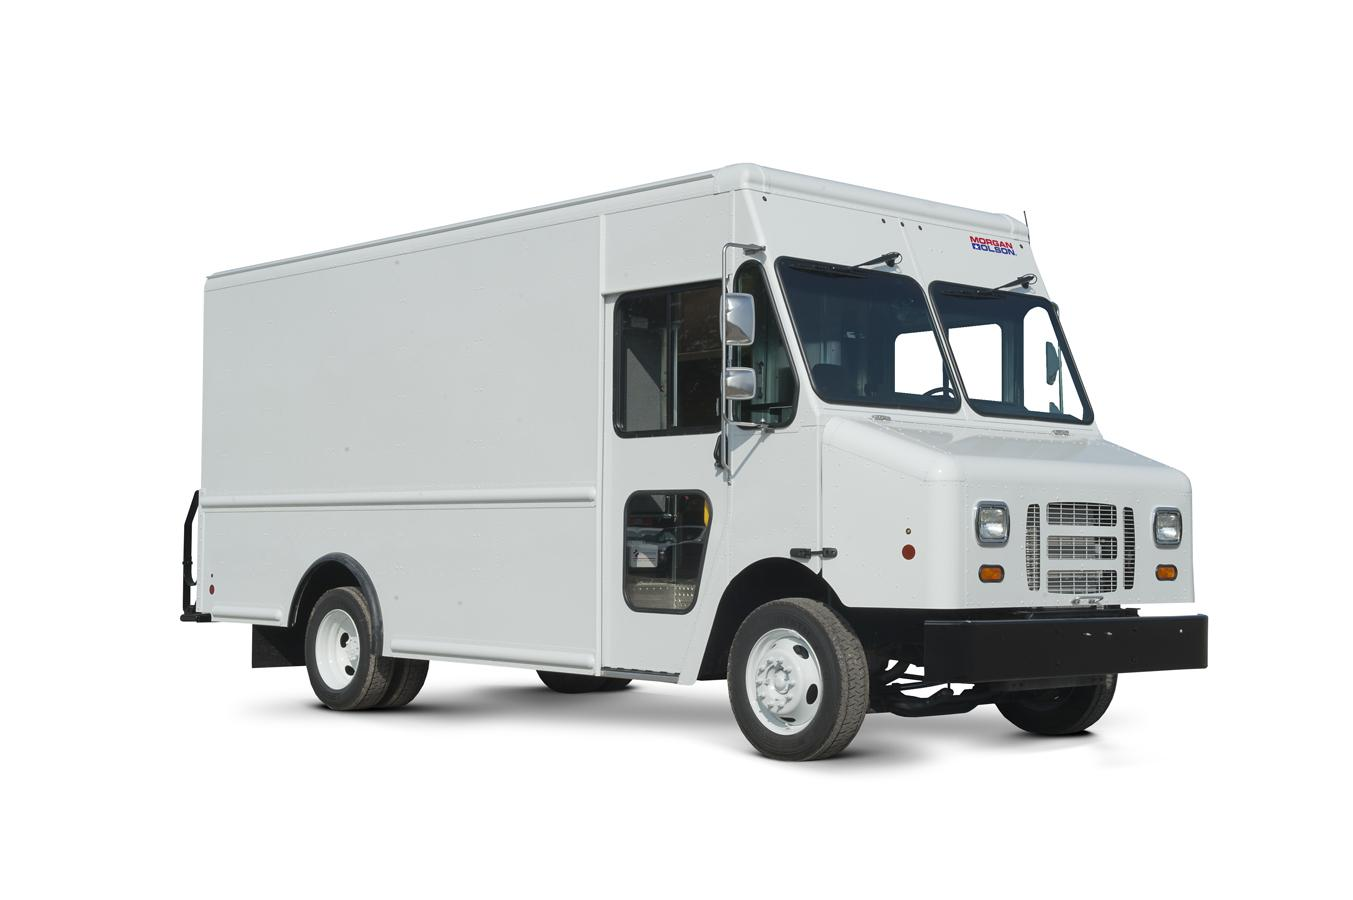 Ford Parcel Delivery Photo Gallery | South Bay Ford Commercial